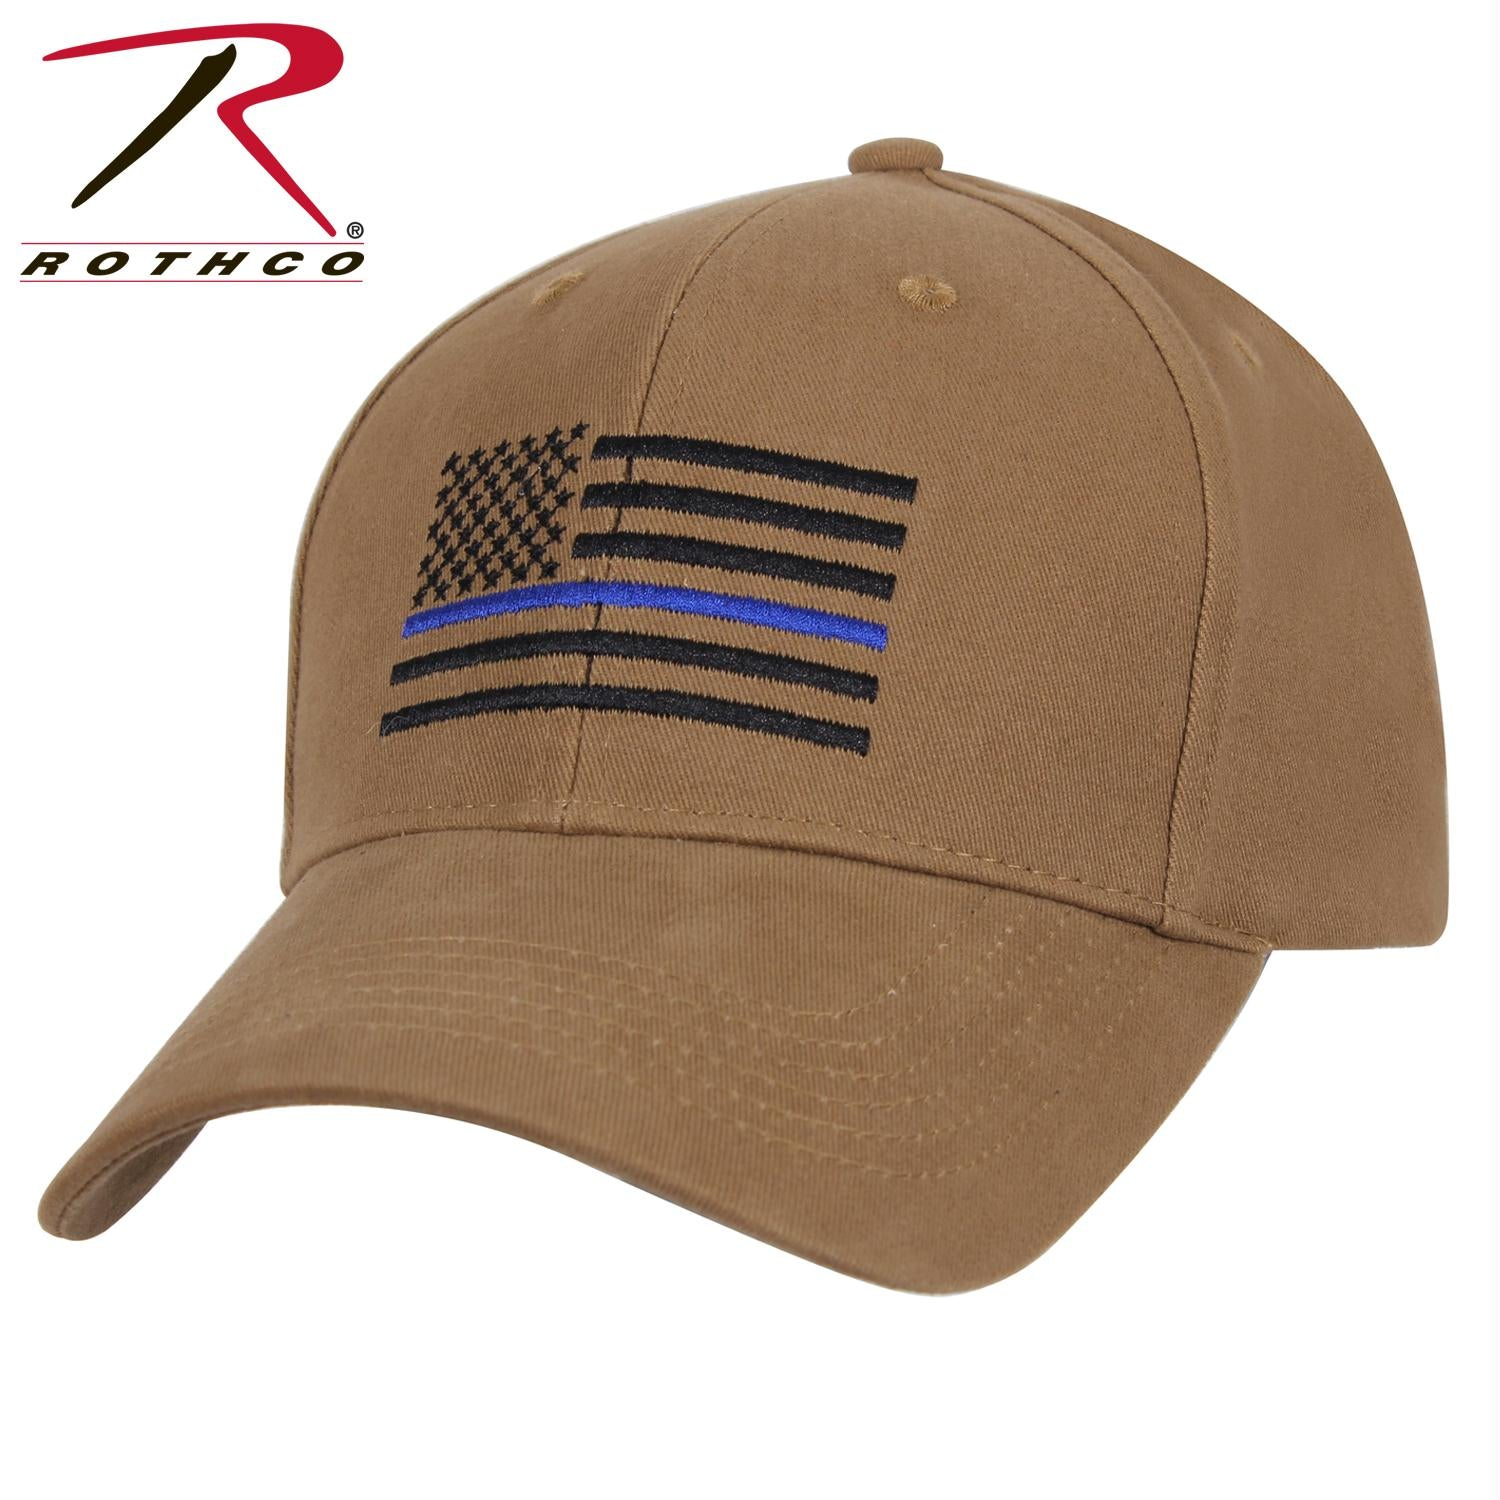 Rothco Thin Blue Line Flag Low Profile Cap - Coyote Brown